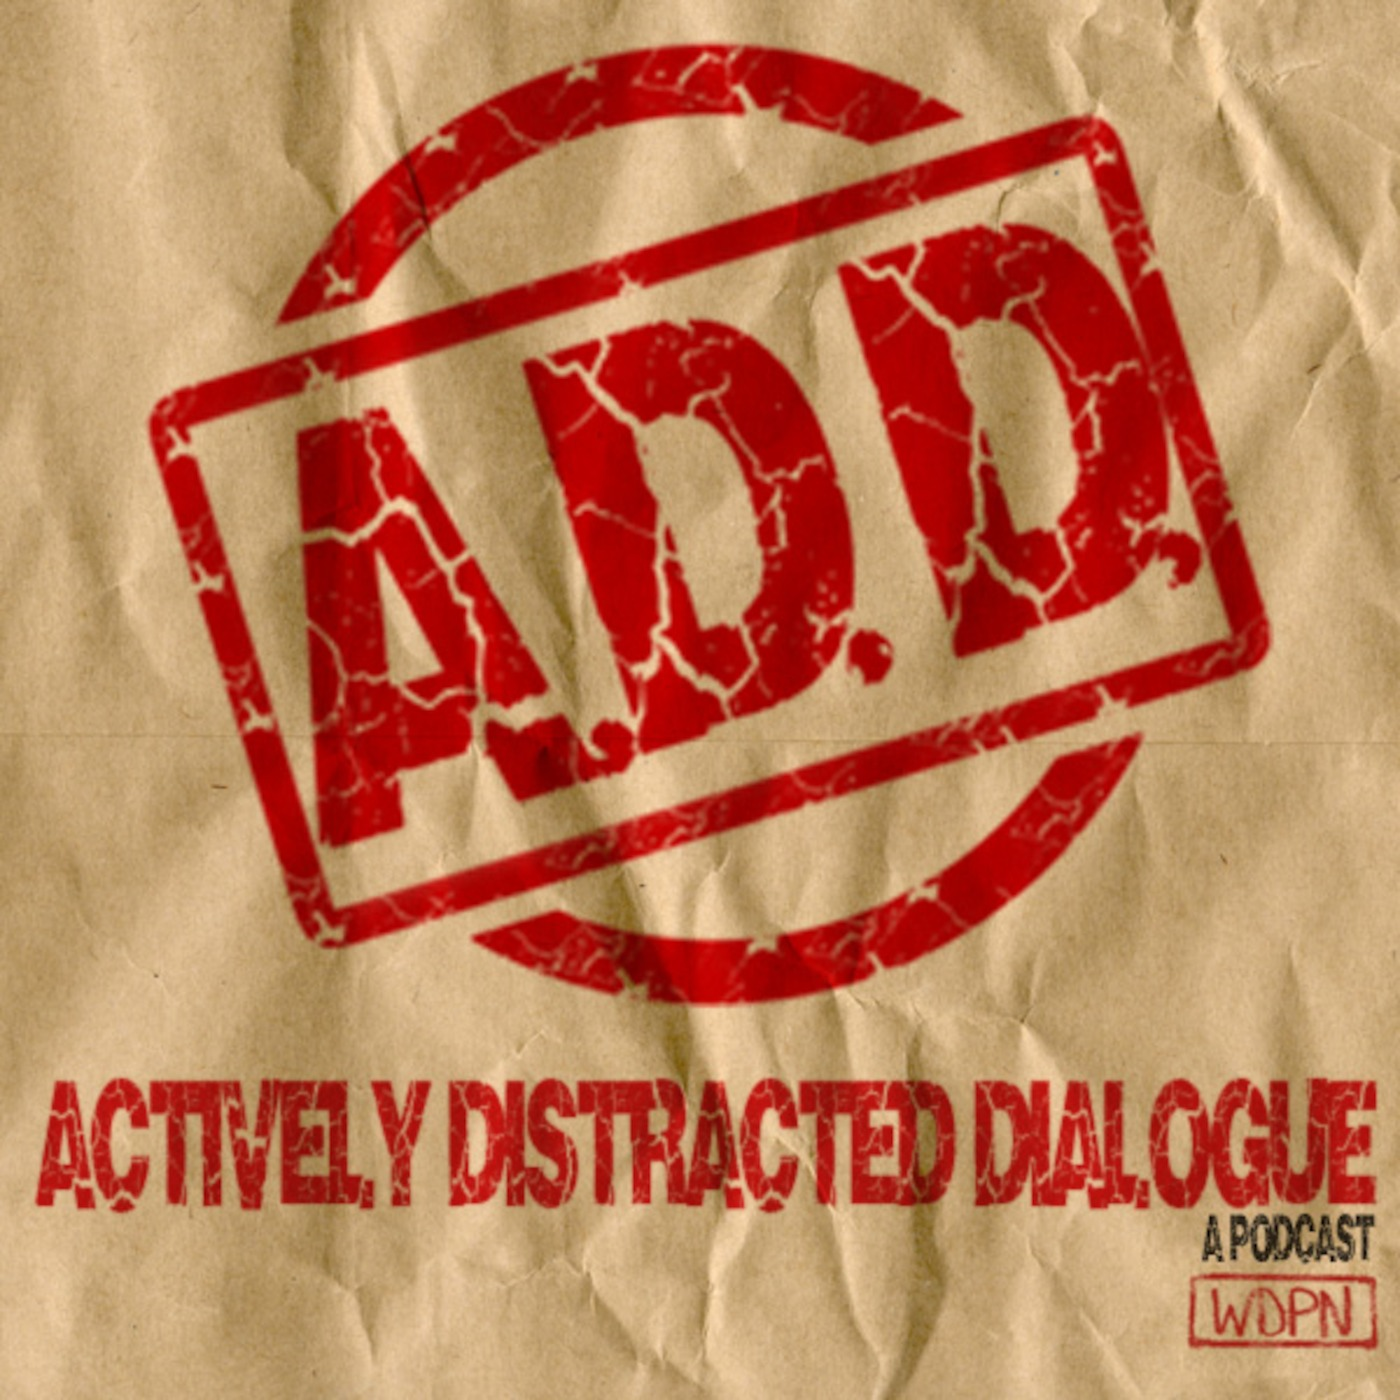 Actively Distracted Dialogue